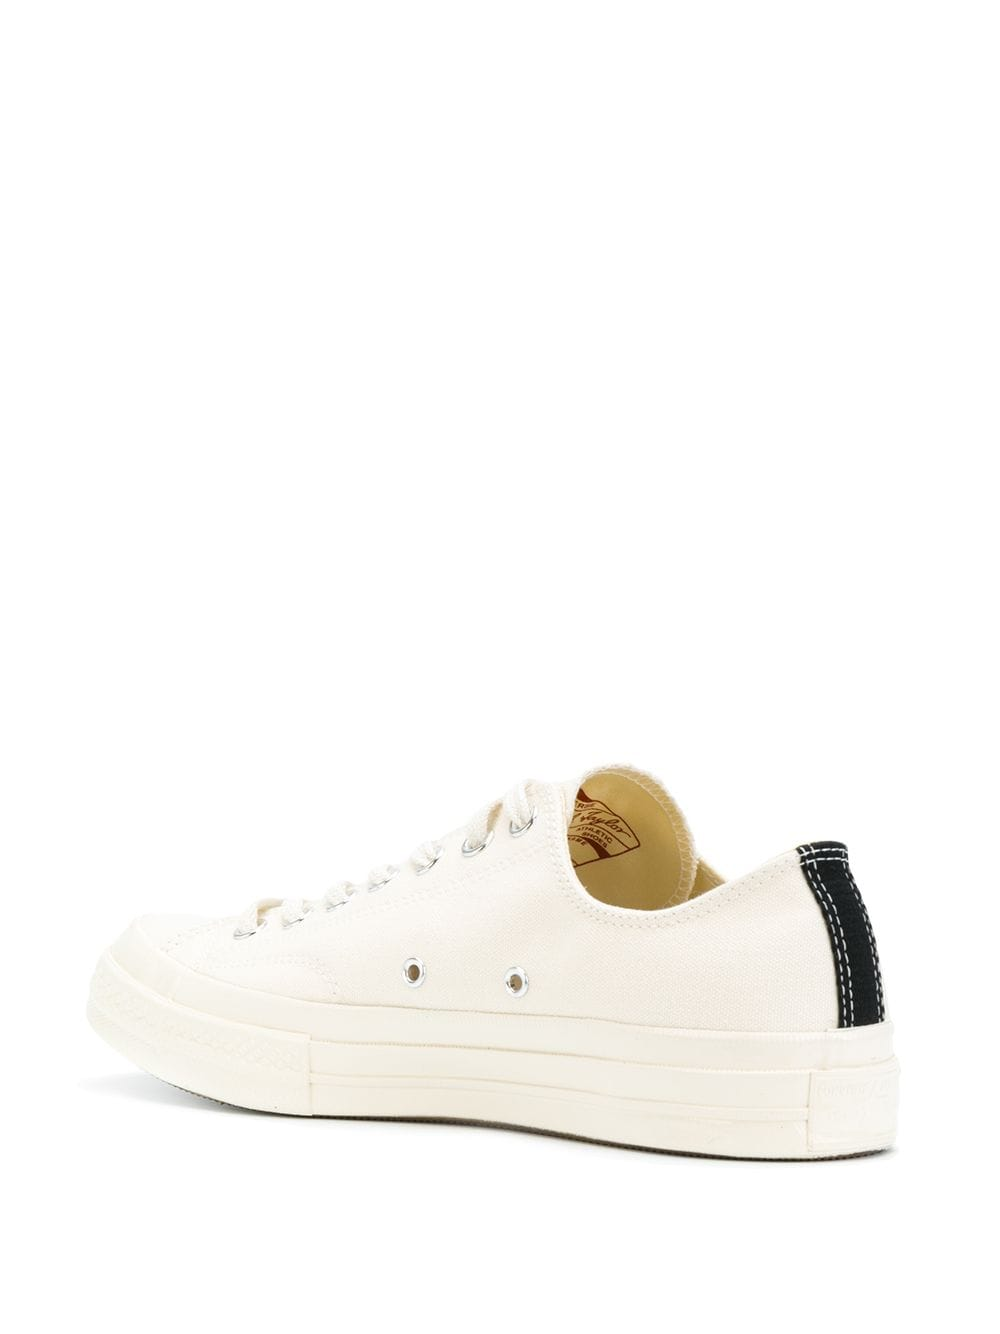 low play converse unisex white in canvas COMME DES GARÇONS PLAY X CONVERSE | Sneakers | P1K1112